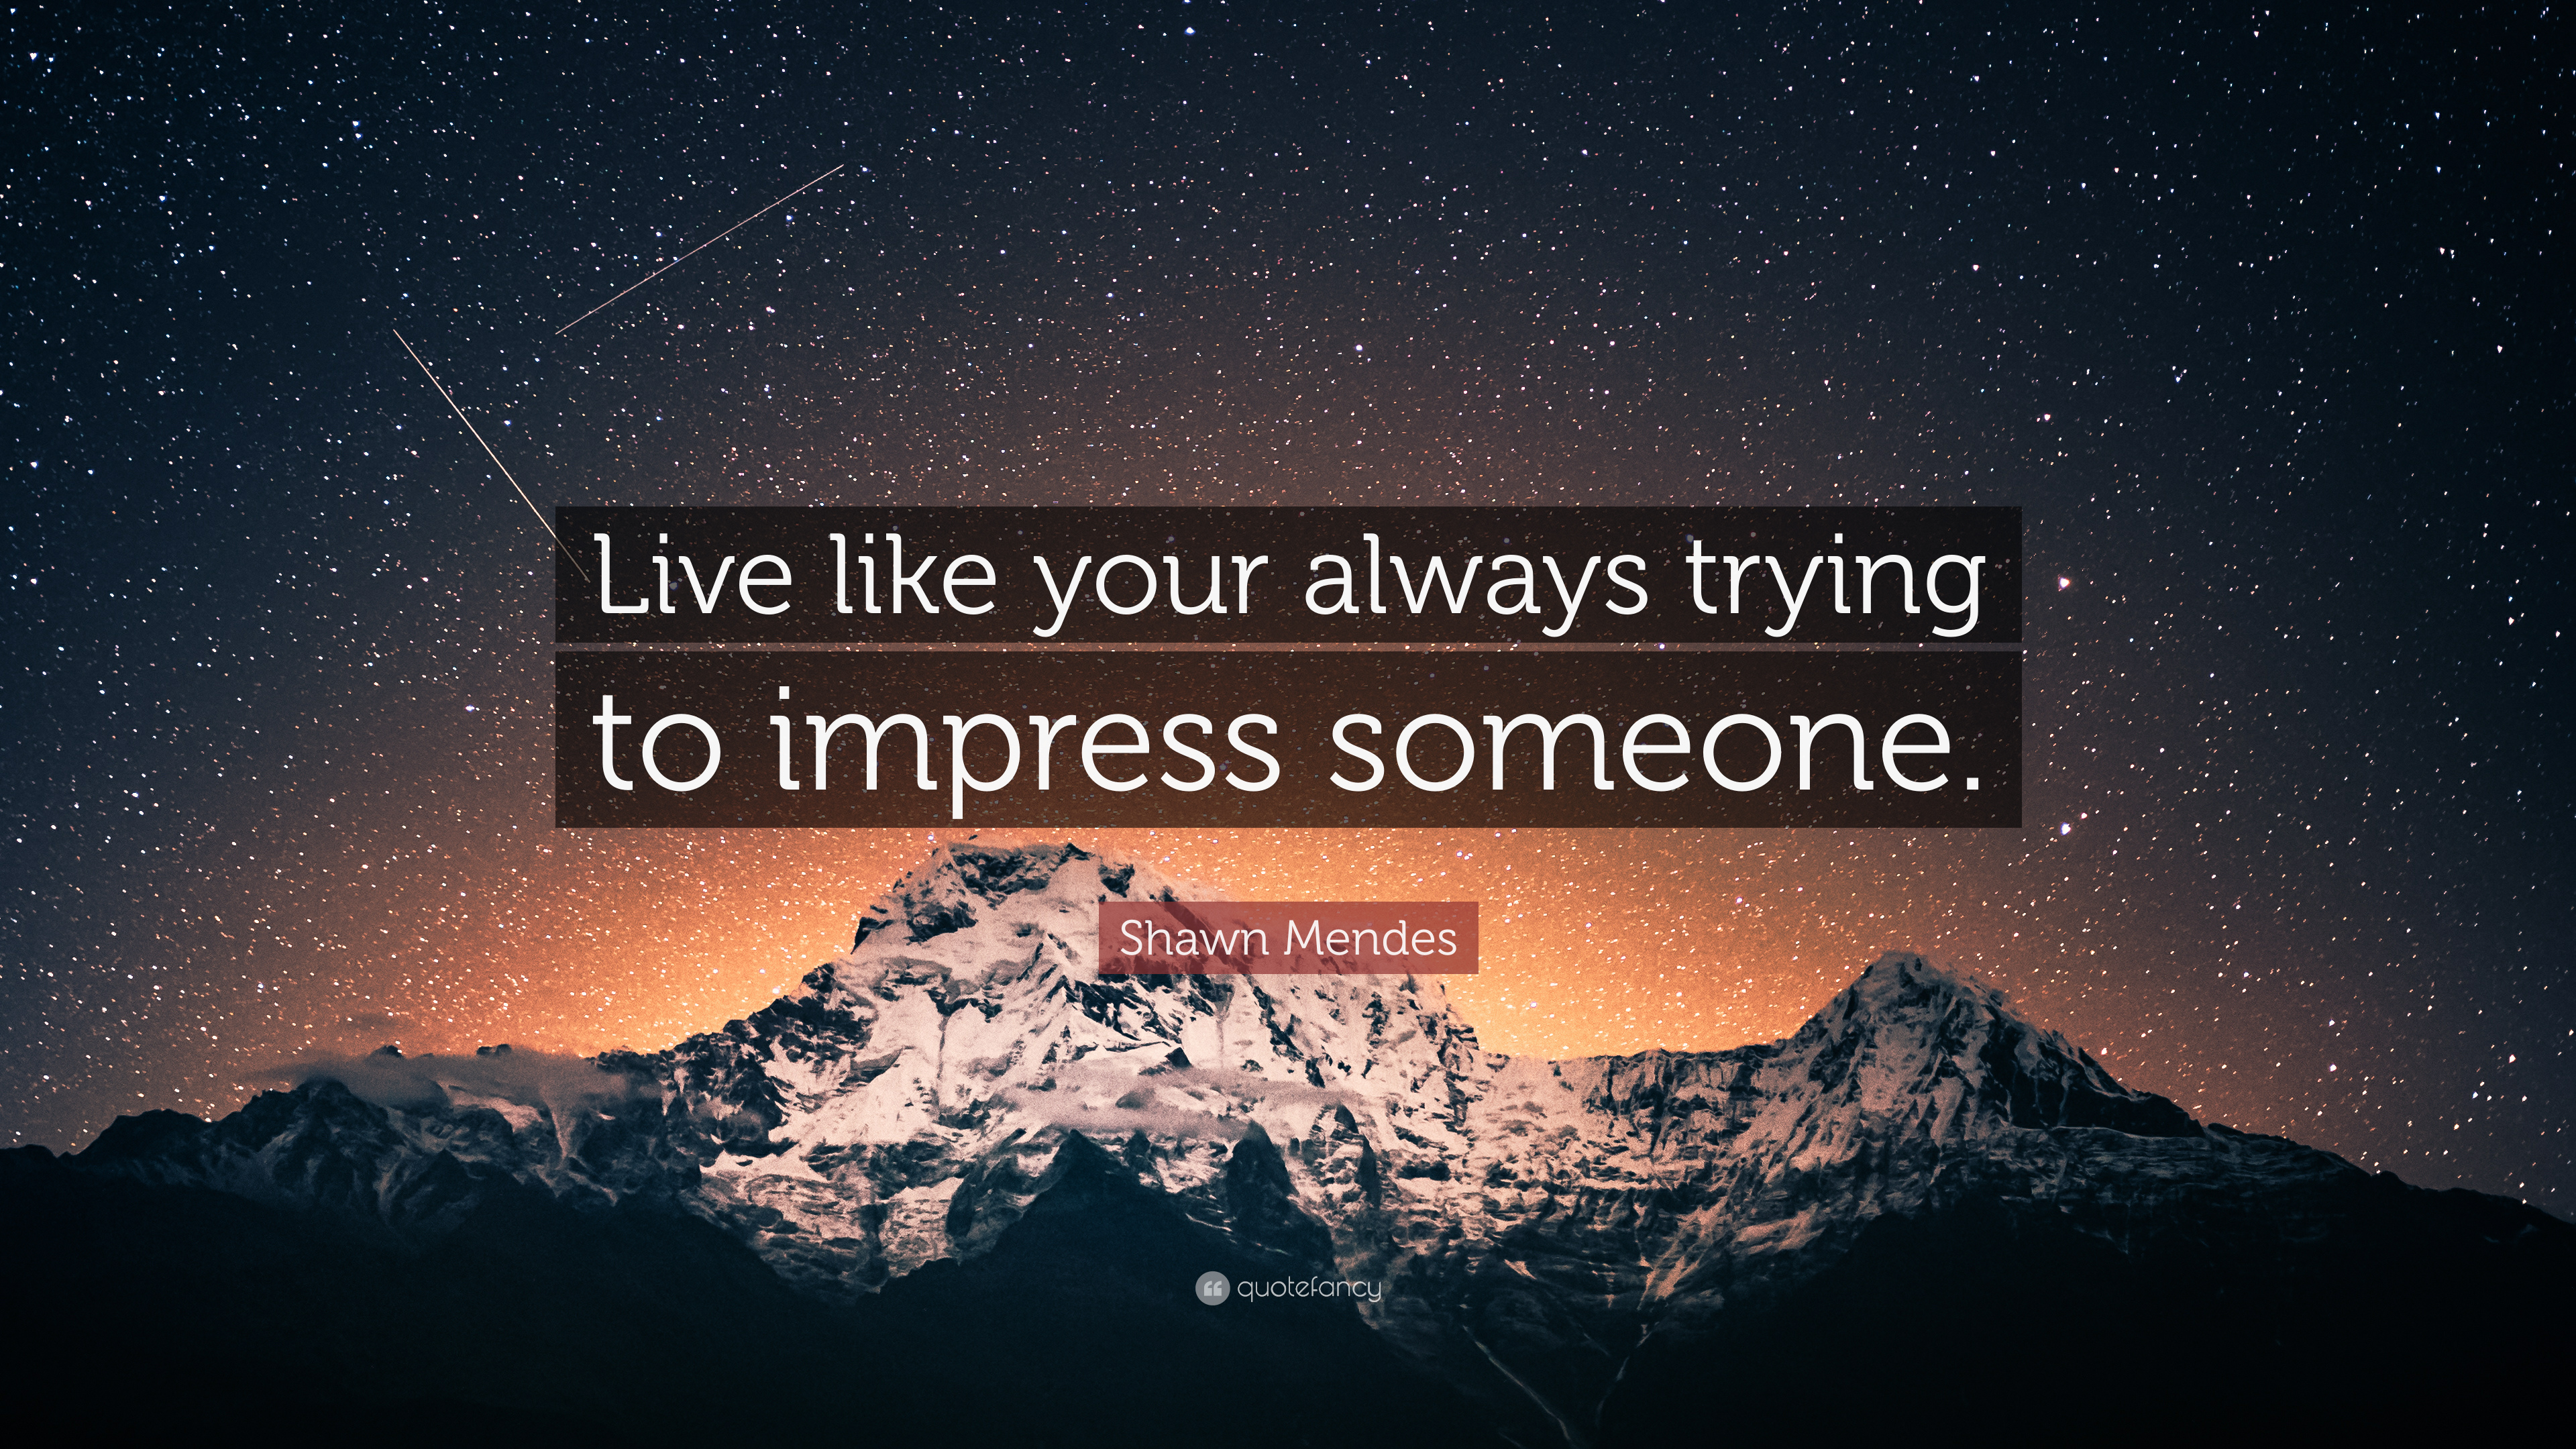 Shawn Mendes Quote Live Like Your Always Trying To Impress